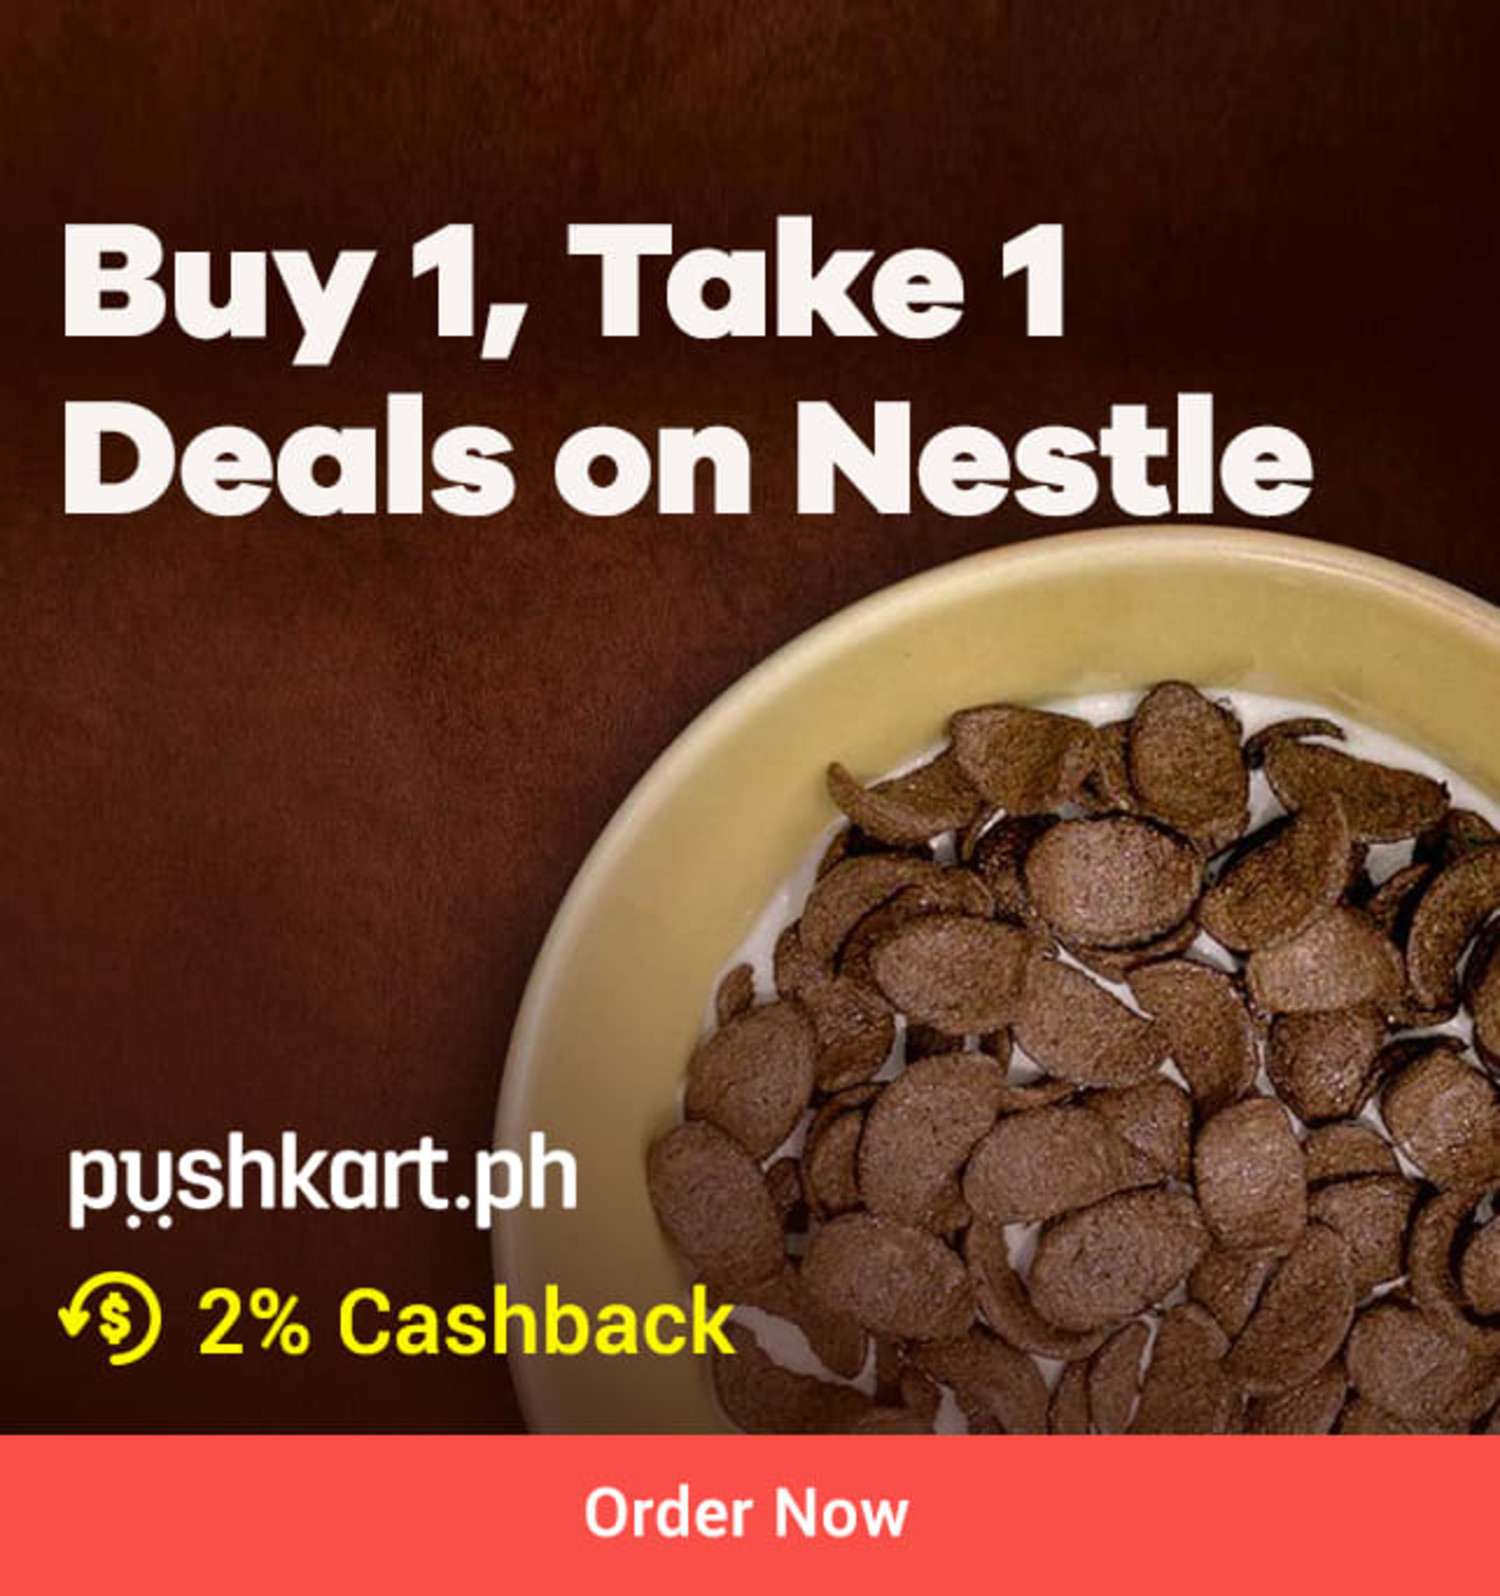 Pushkart.ph Buy 1, Take 1 Deals on Nestle + 2% Cashback